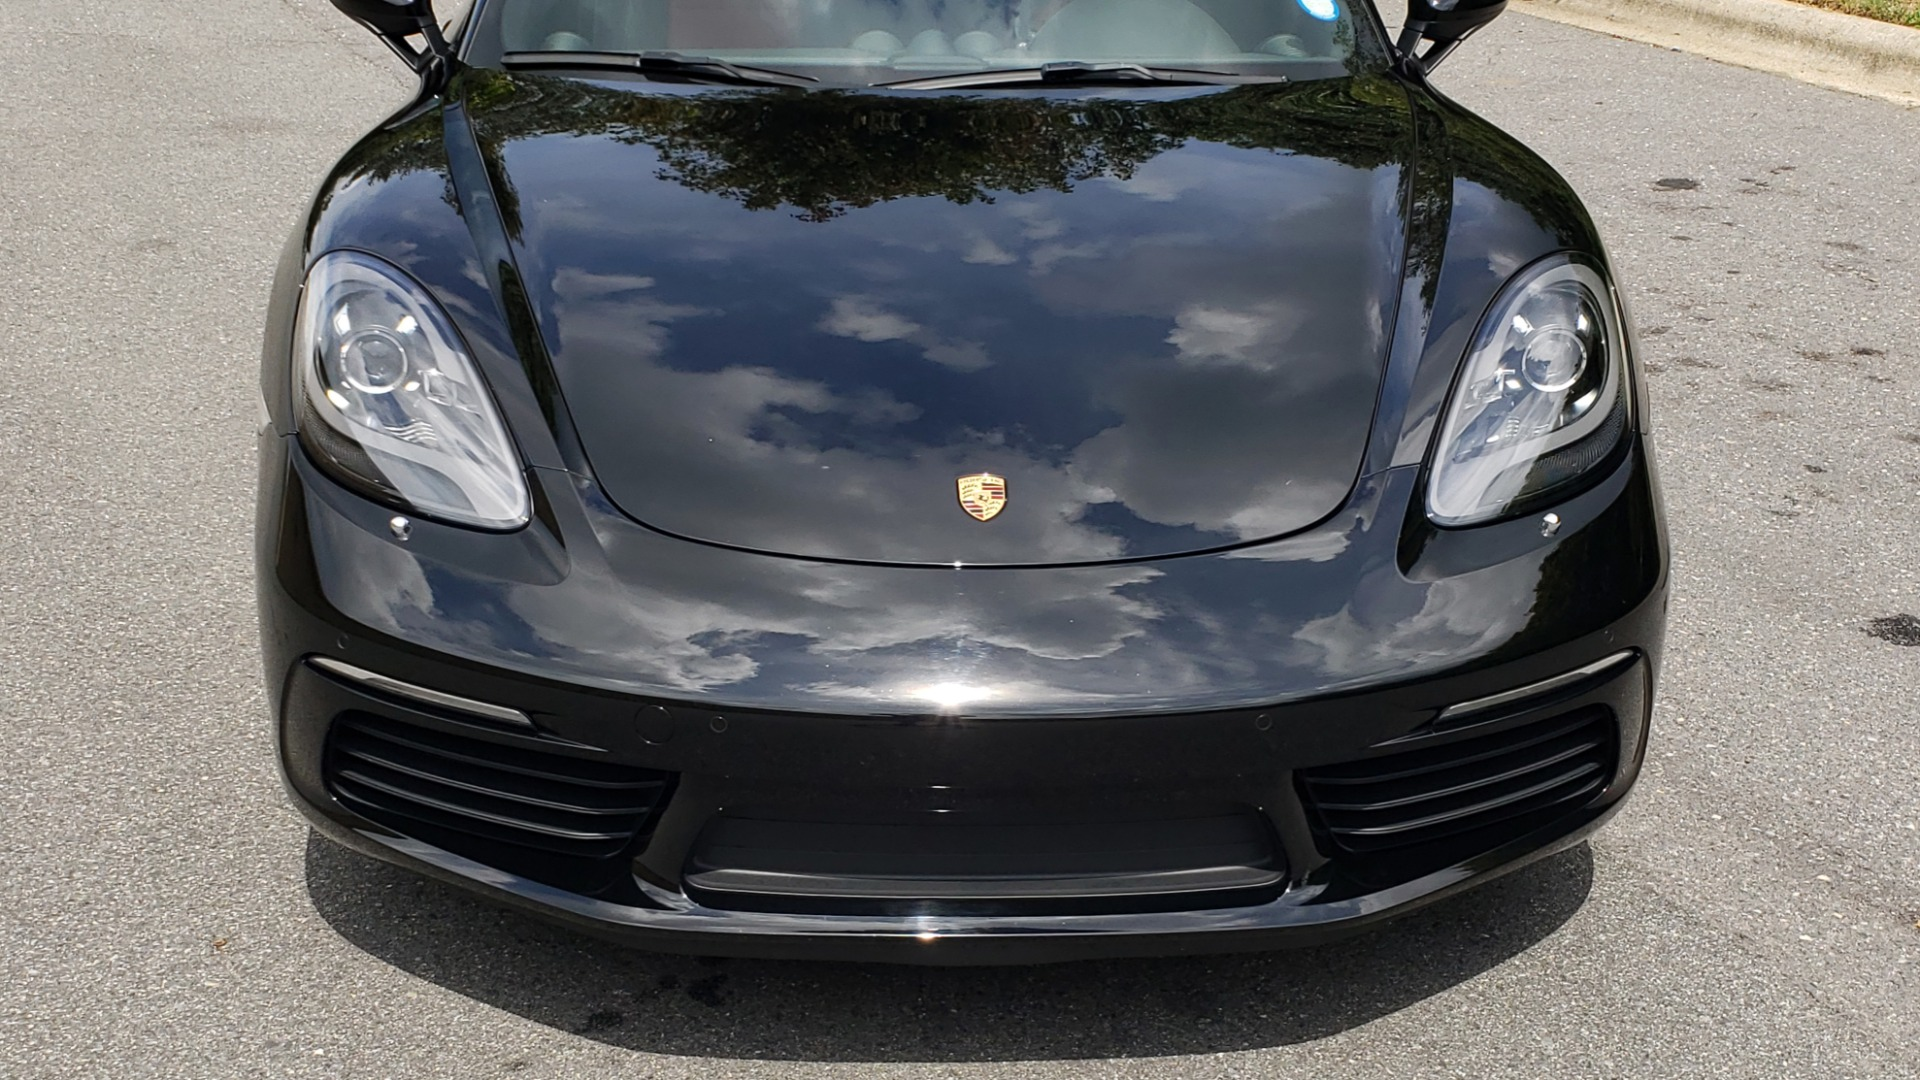 Used 2018 Porsche 718 CAYMAN S / PREM PKG PLUS / PDK / NAV / BOSE / CHRONO / SPORT EXHAUST for sale Sold at Formula Imports in Charlotte NC 28227 18